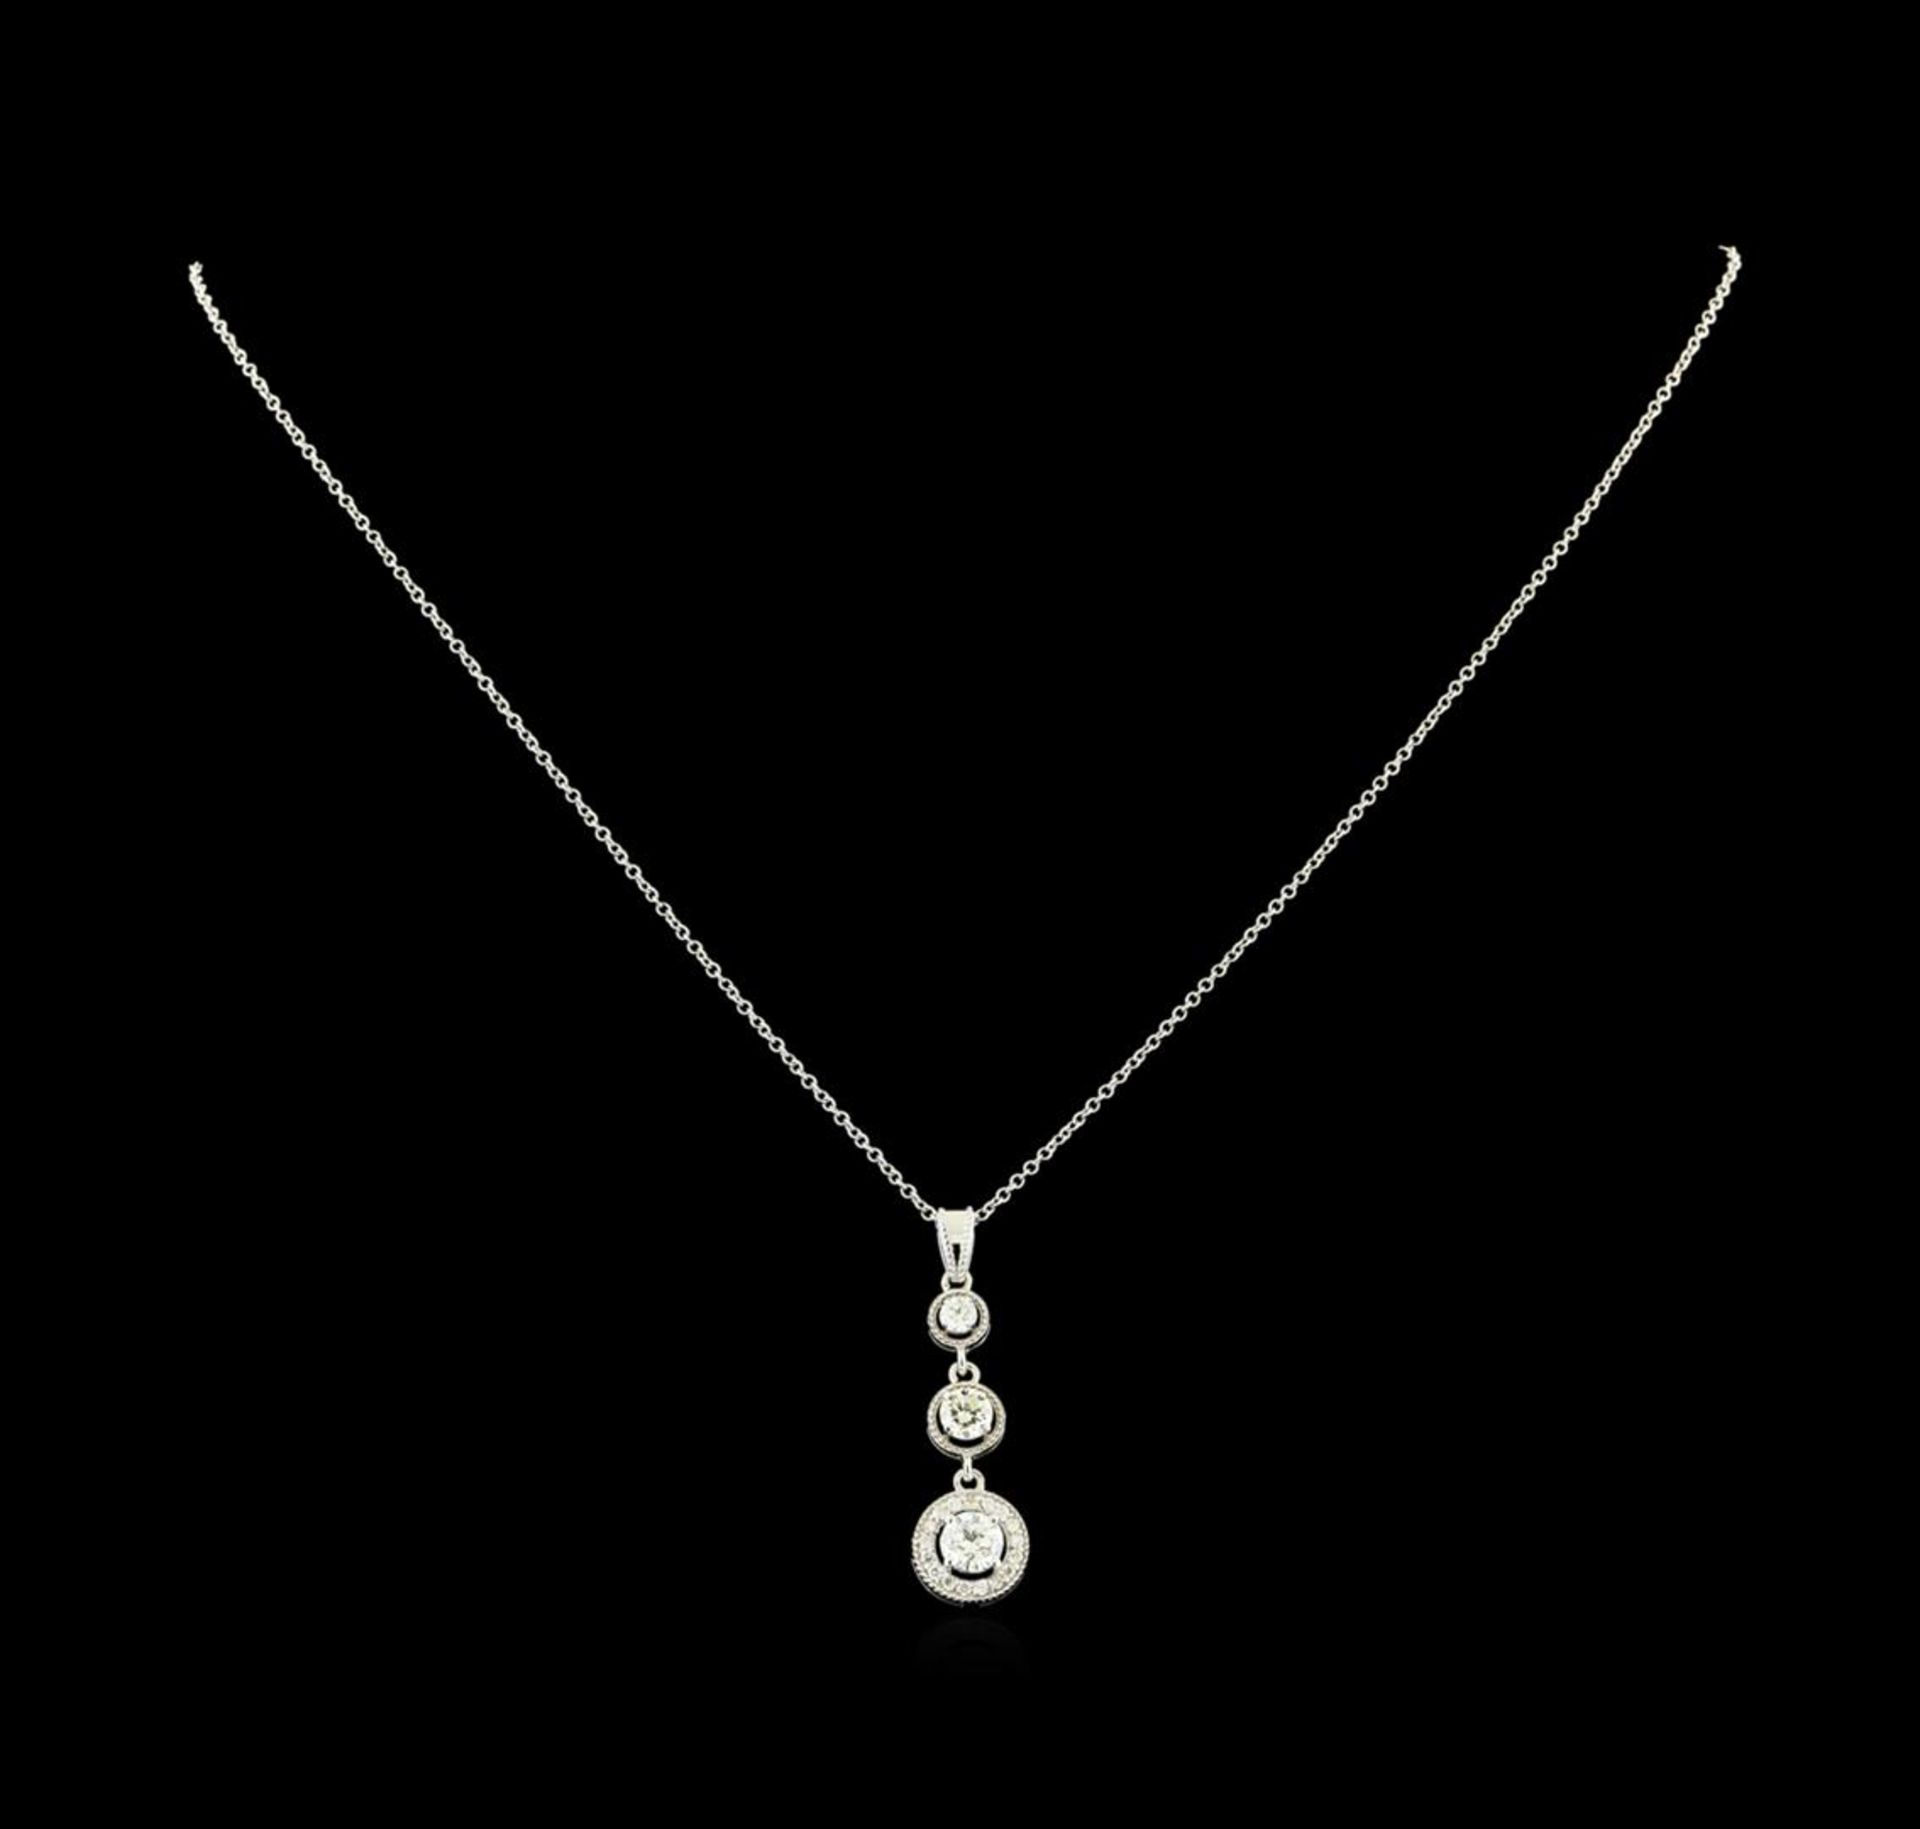 1.06 ctw Diamond Pendant With Chain - 14KT White Gold - Image 2 of 4